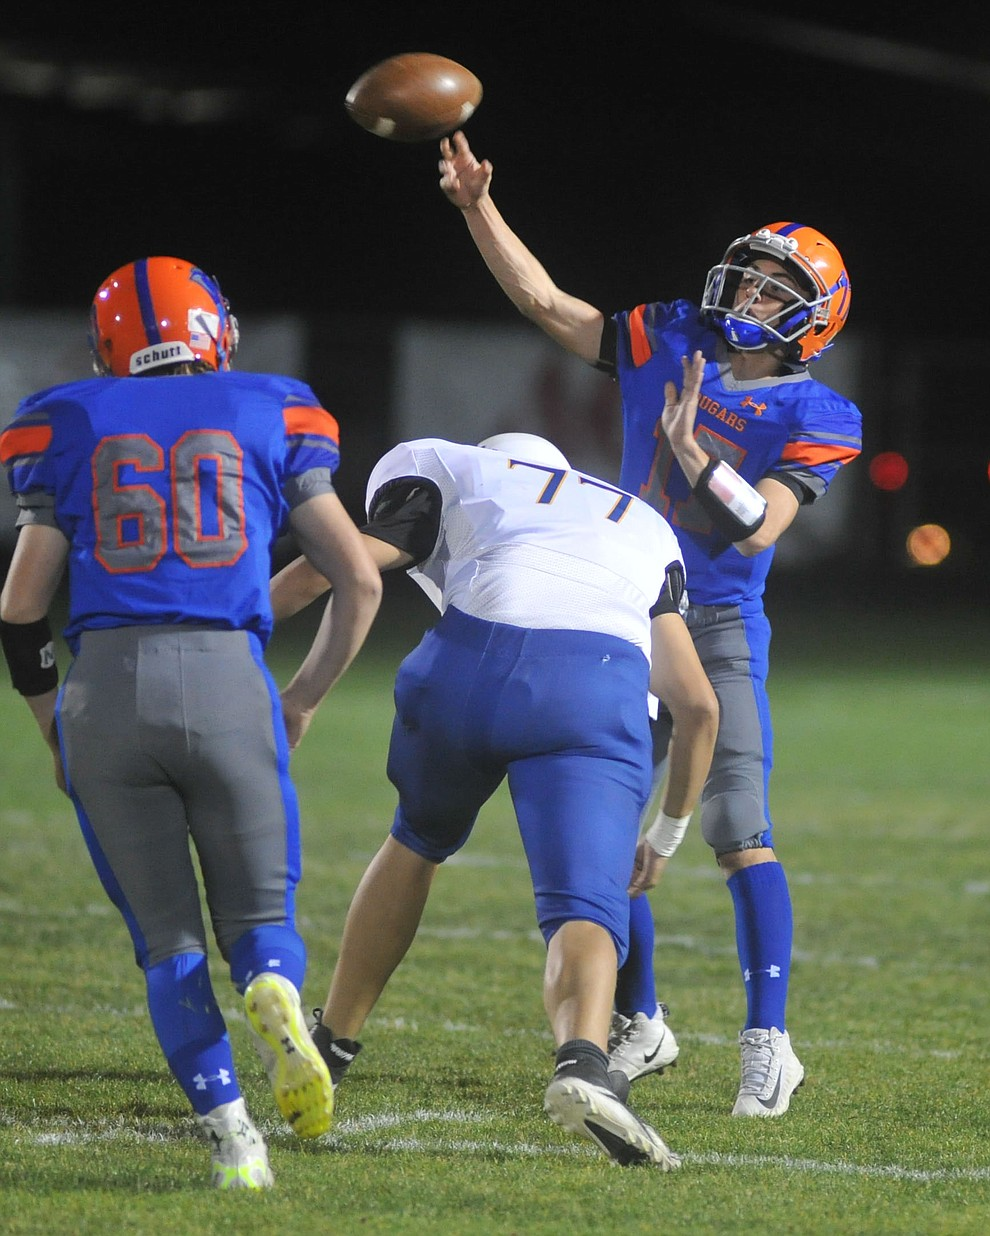 Chino Valley's Seth Jelovic gets pressured by Dimitri Trebiani as the Cougars take on the Kingman Bulldogs Friday, October 6. (Les Stukenberg/Courier)